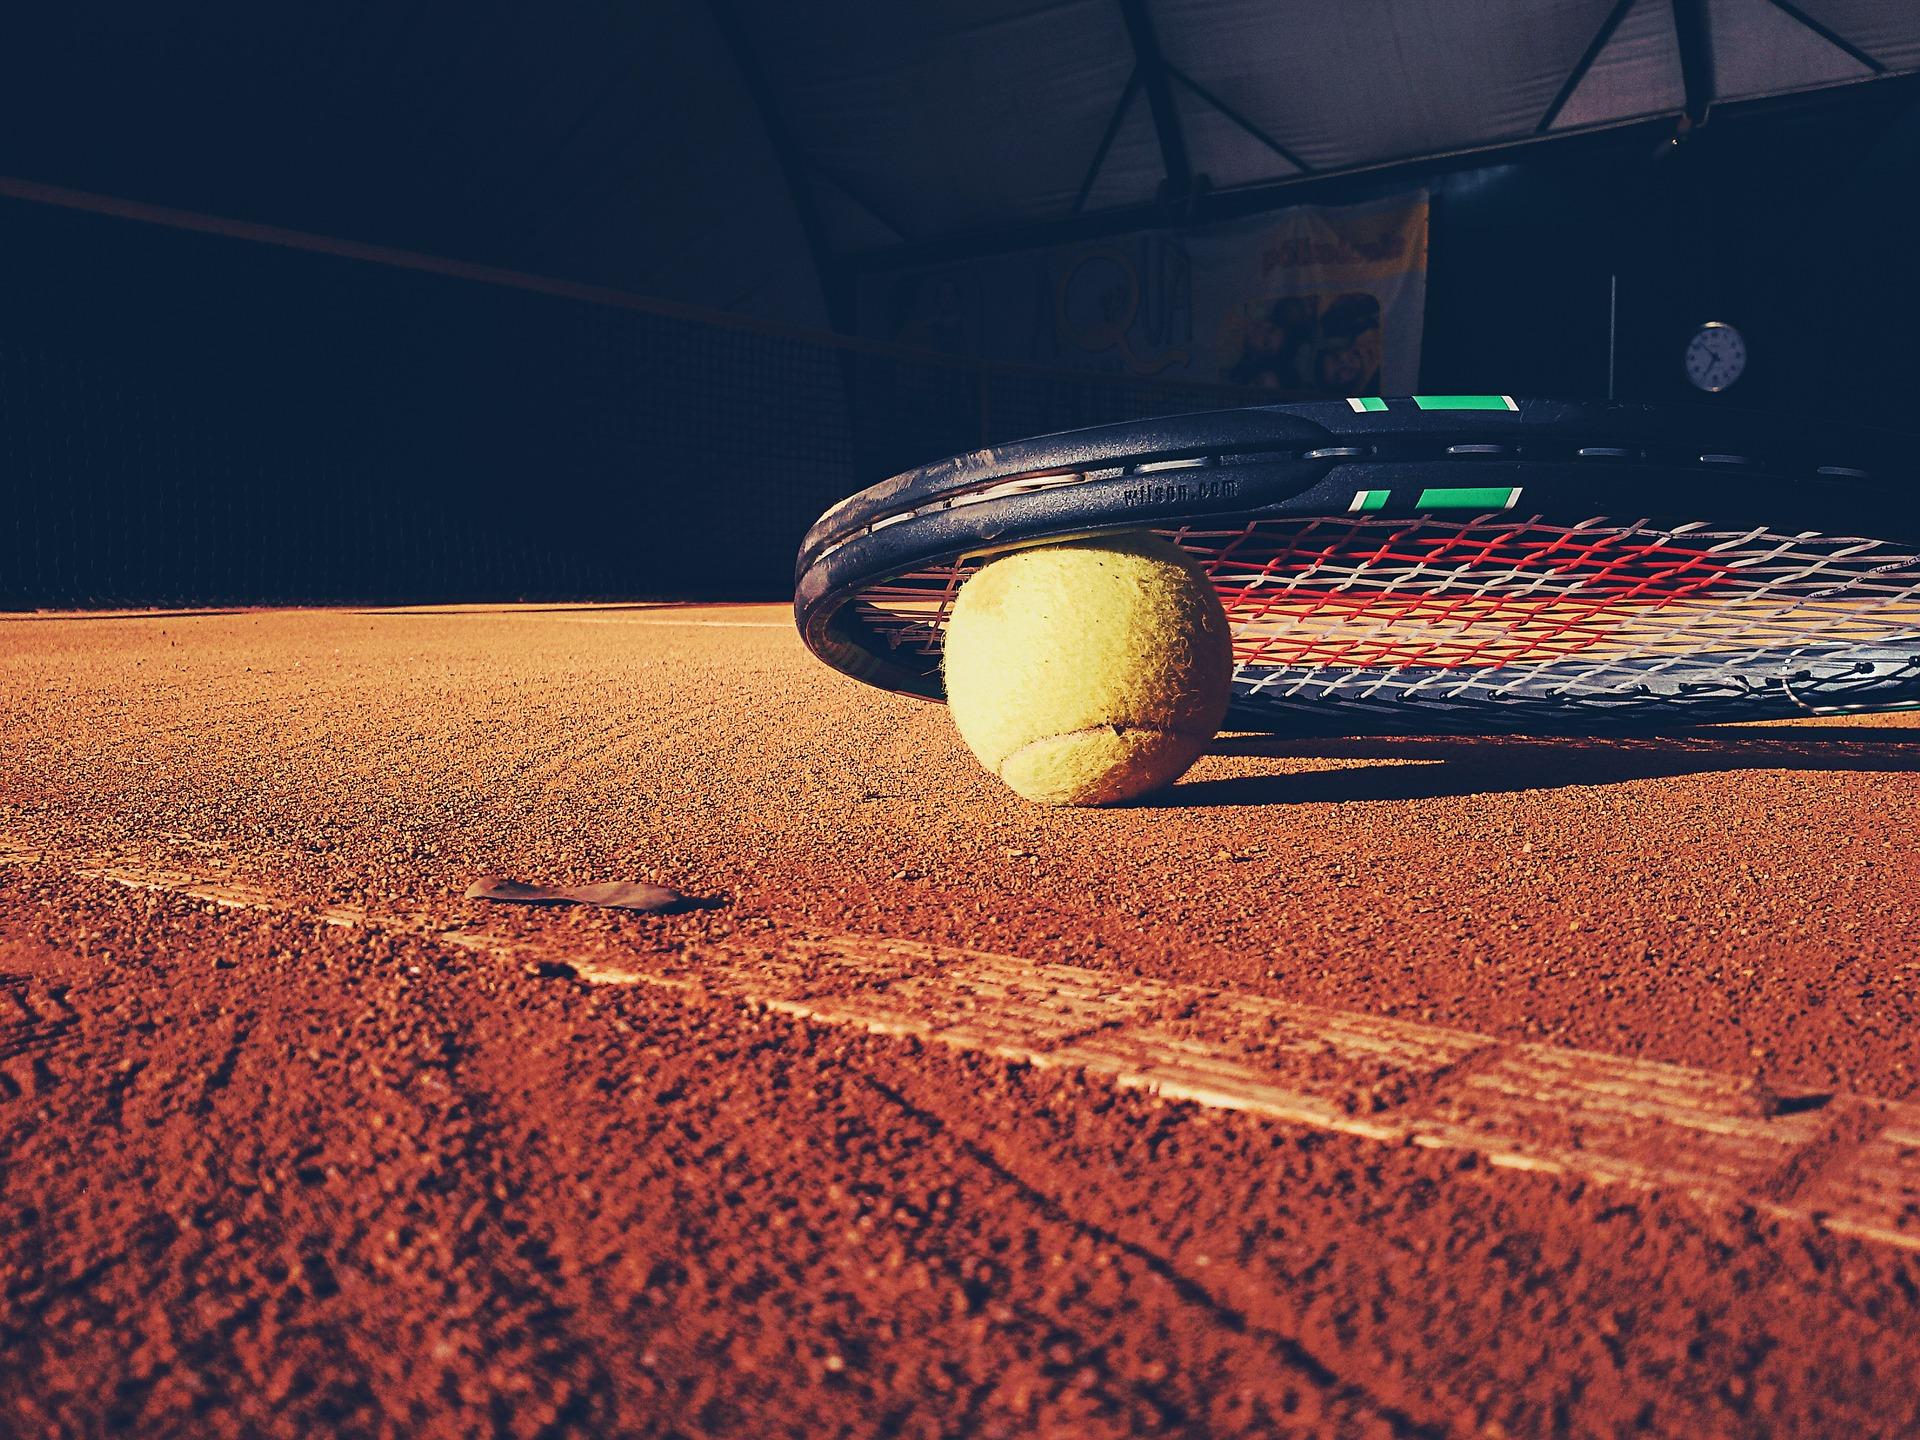 August 22-30 - Tennis competition